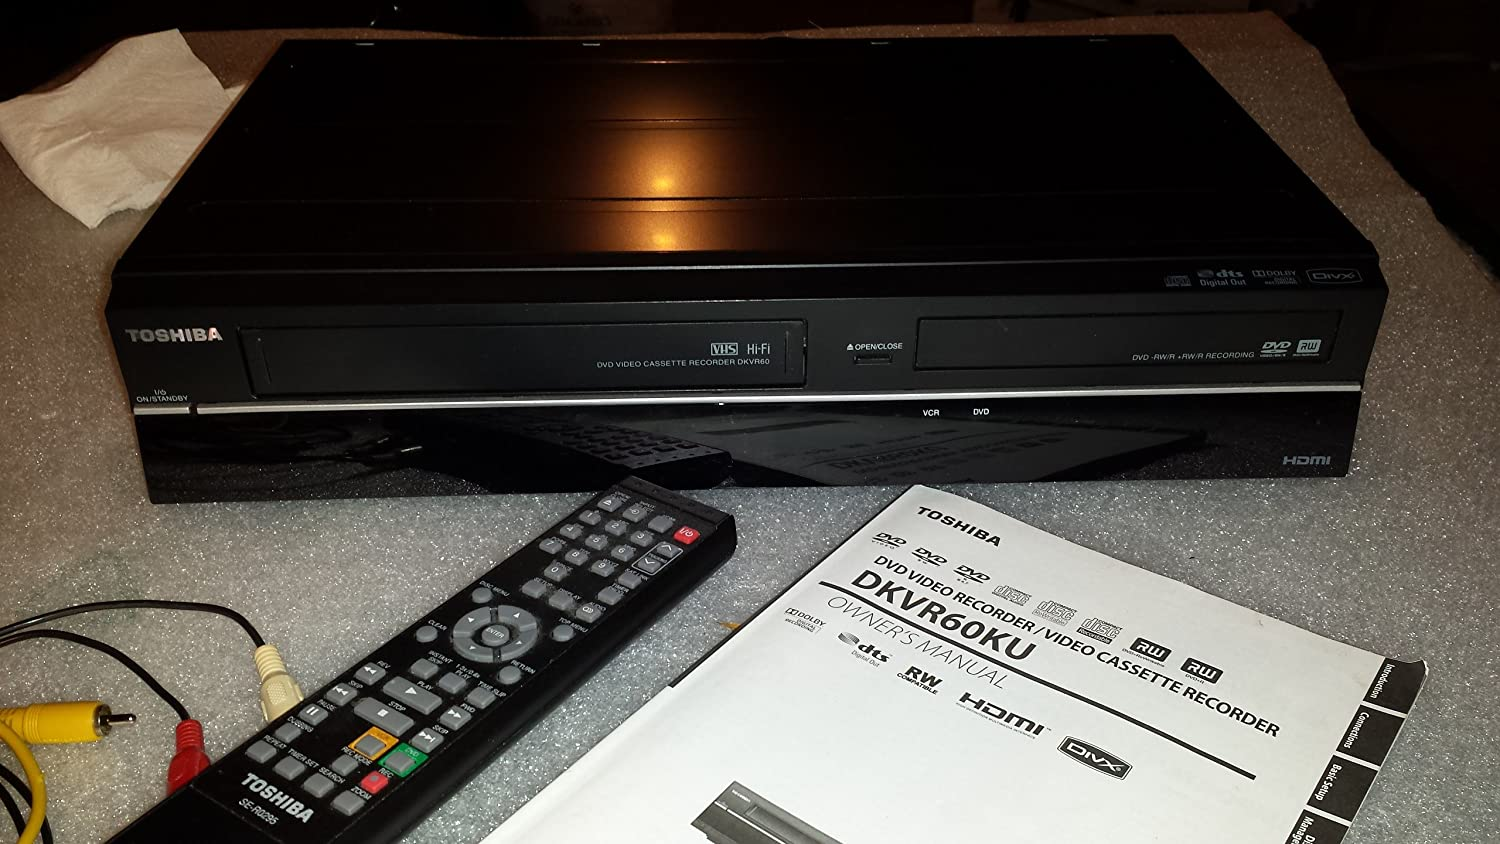 Hooking Up A Dvd Player To Cable Box - Ivoiregion